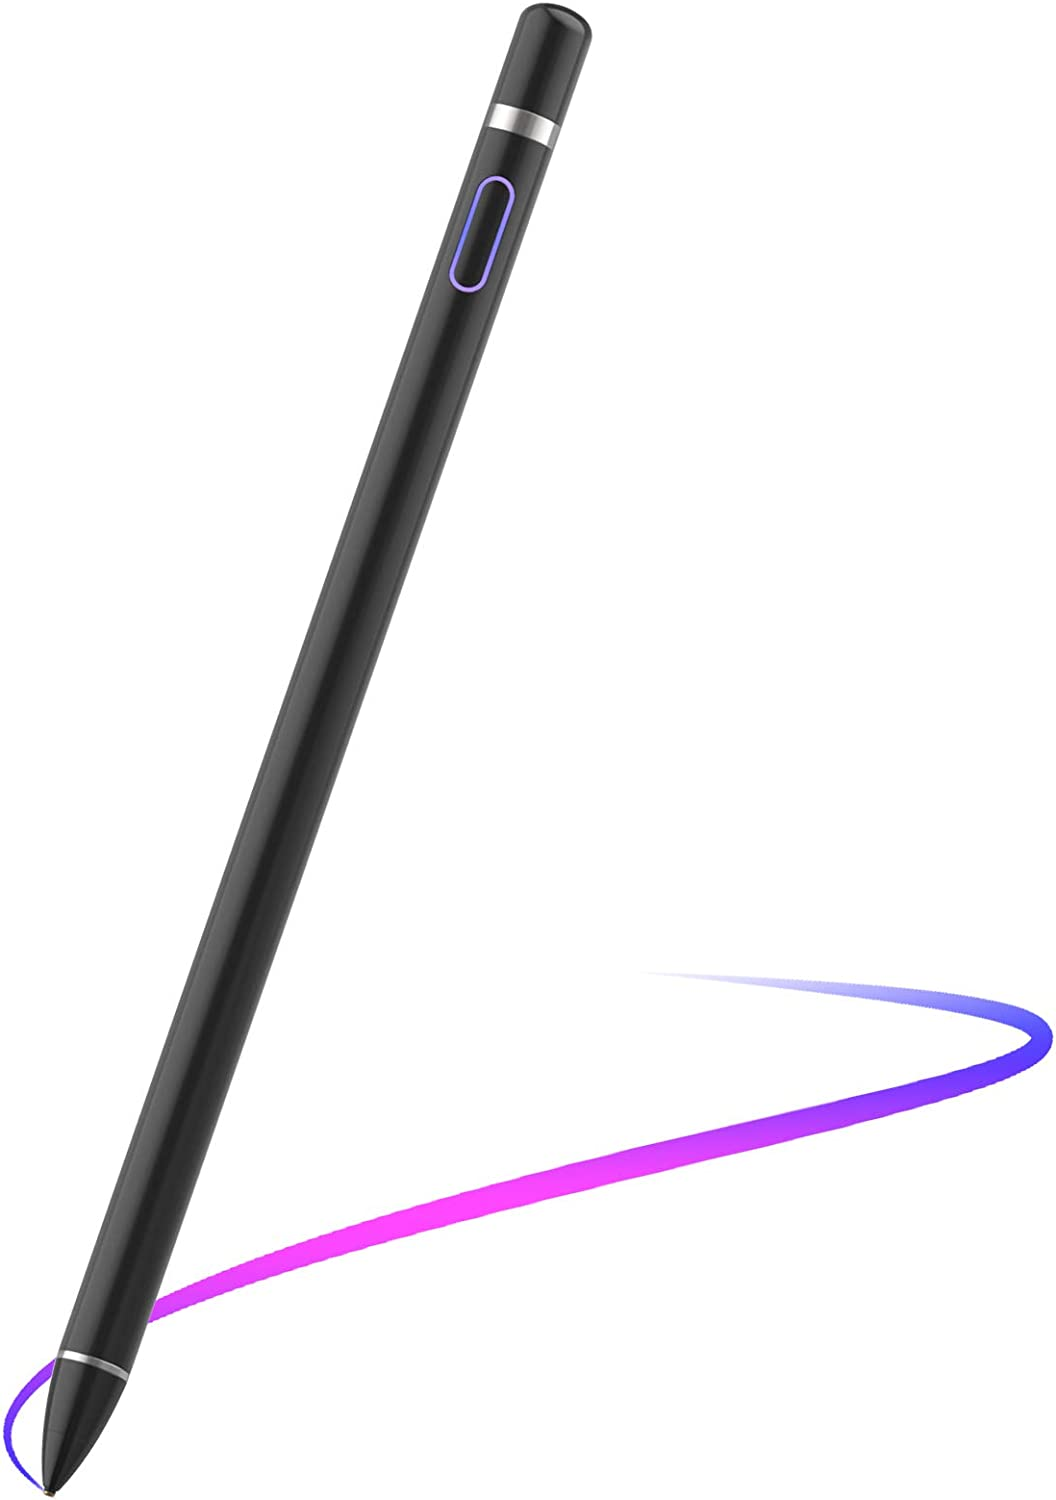 Stylus Pen for Touch Screens, Digital Pencil Active Pens Fine Point Stylist Compatible with iPhone iPad Pro Air Mini and Other Tablets